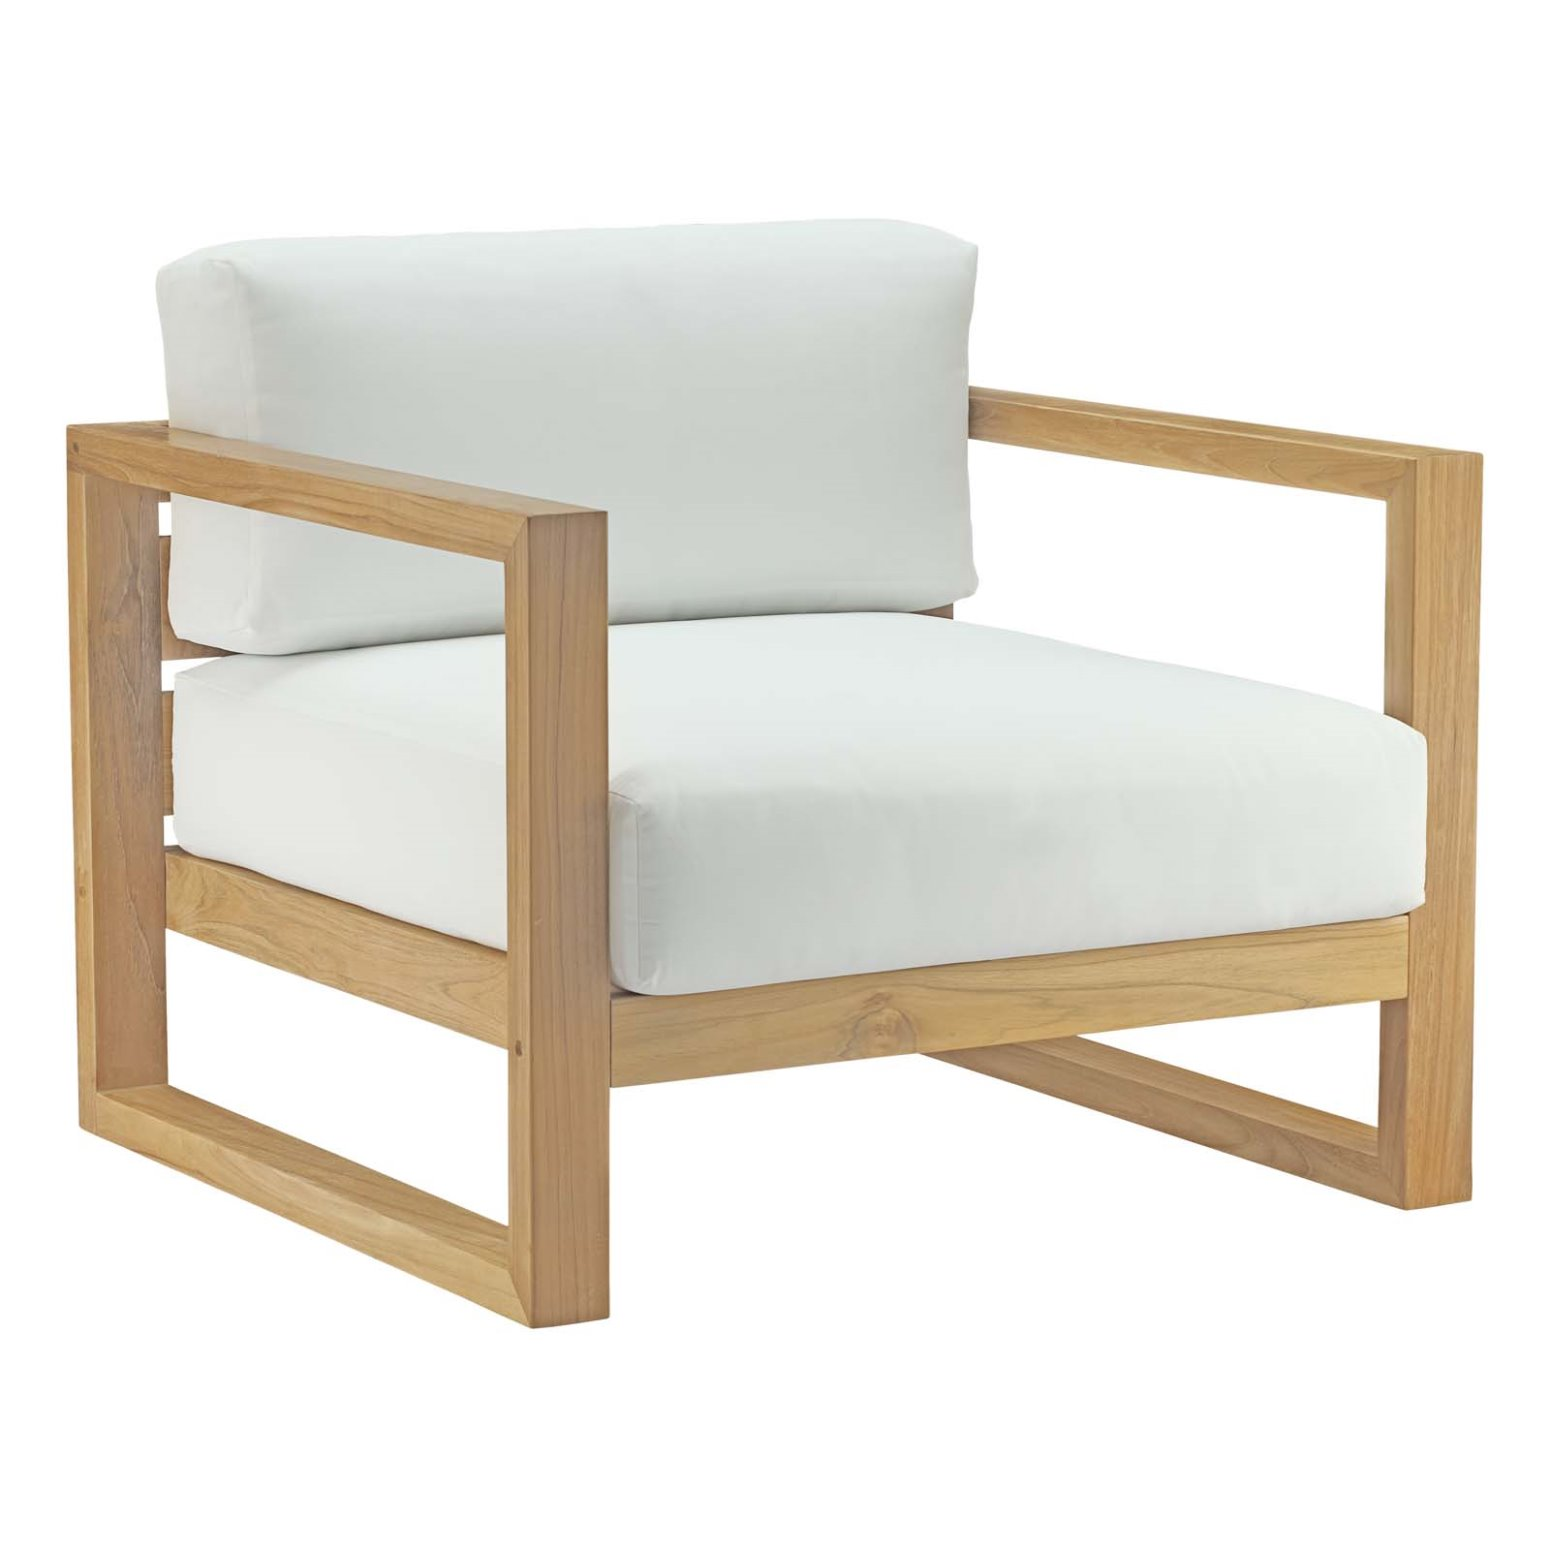 Modern Contemporary Urban Design Outdoor Patio Balcony Lounge Chair, White, Wood